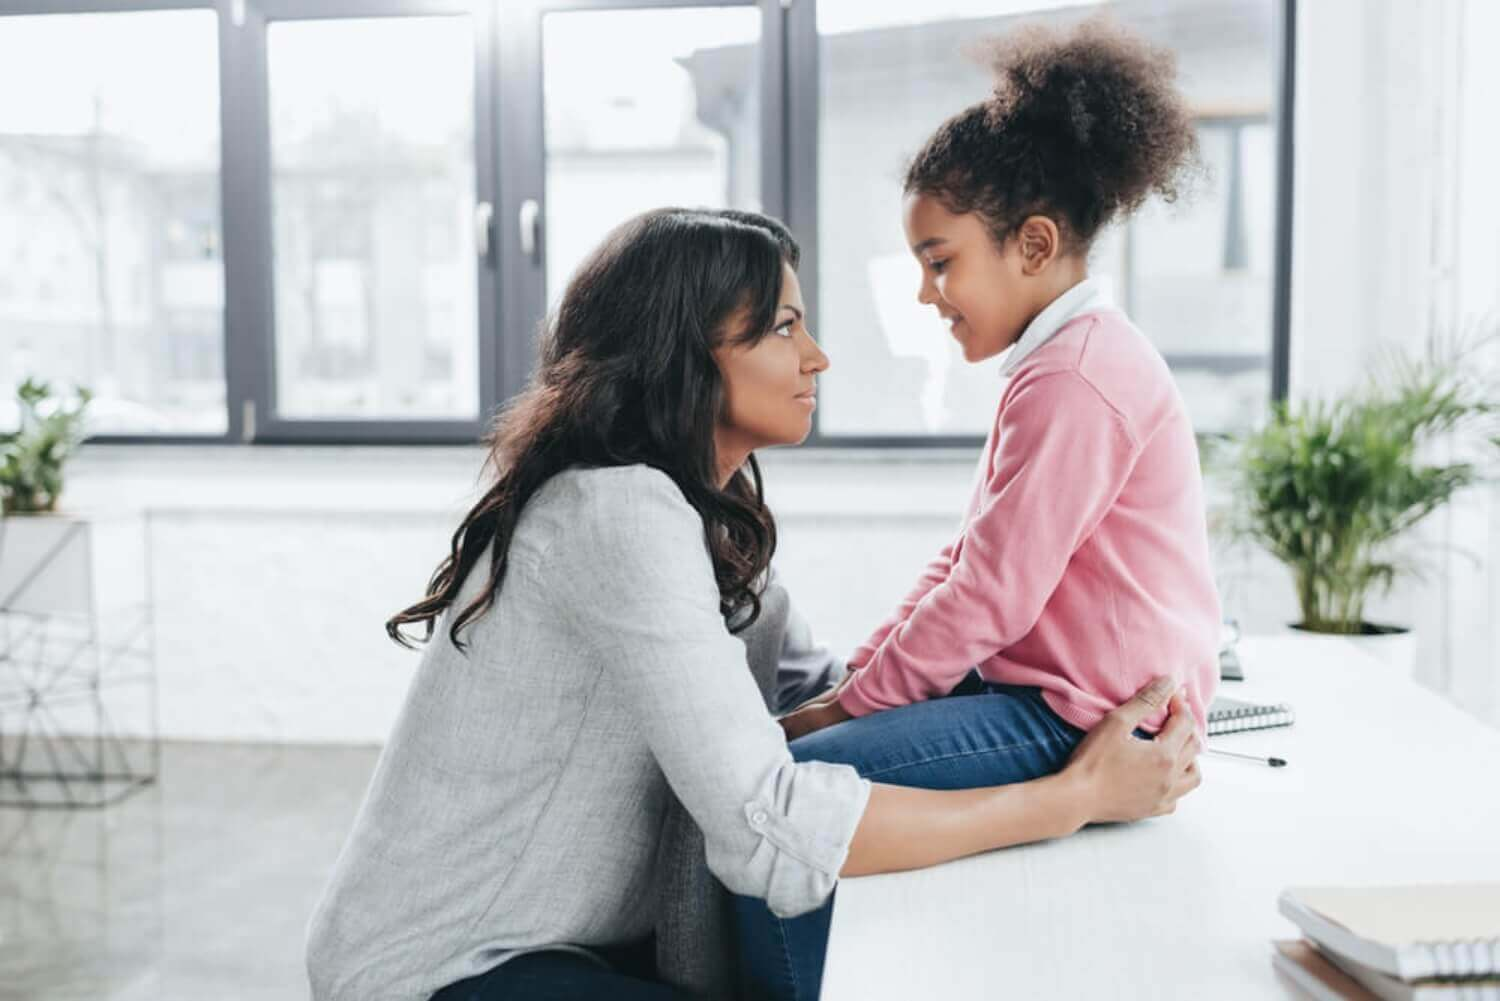 A mother looking into her daughter's eyes as they talk.